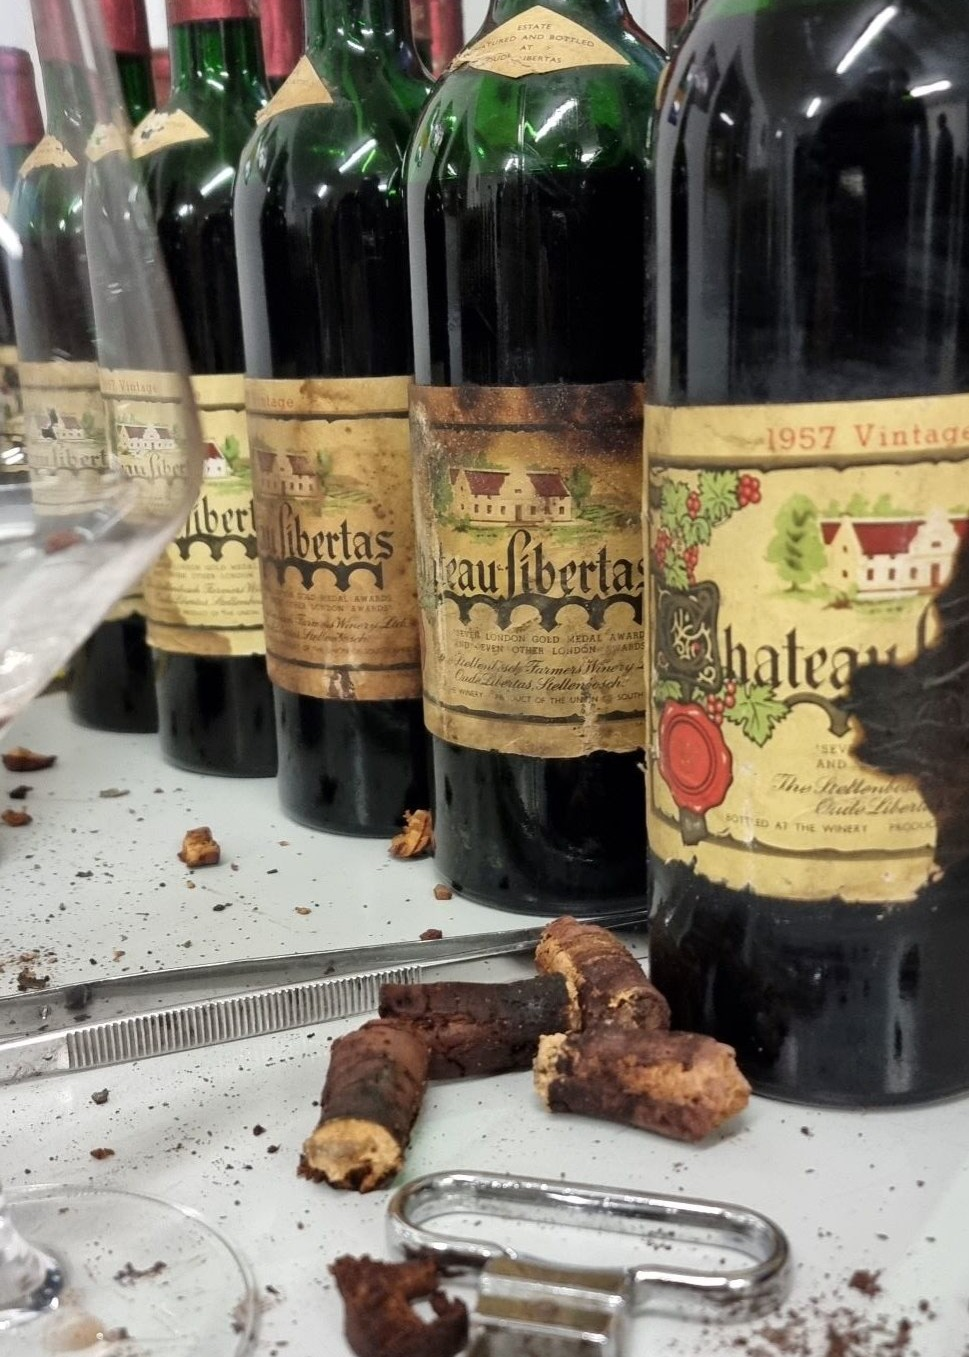 Amorim Re-corking adds Value and Life to Cape Wine Treasures photo